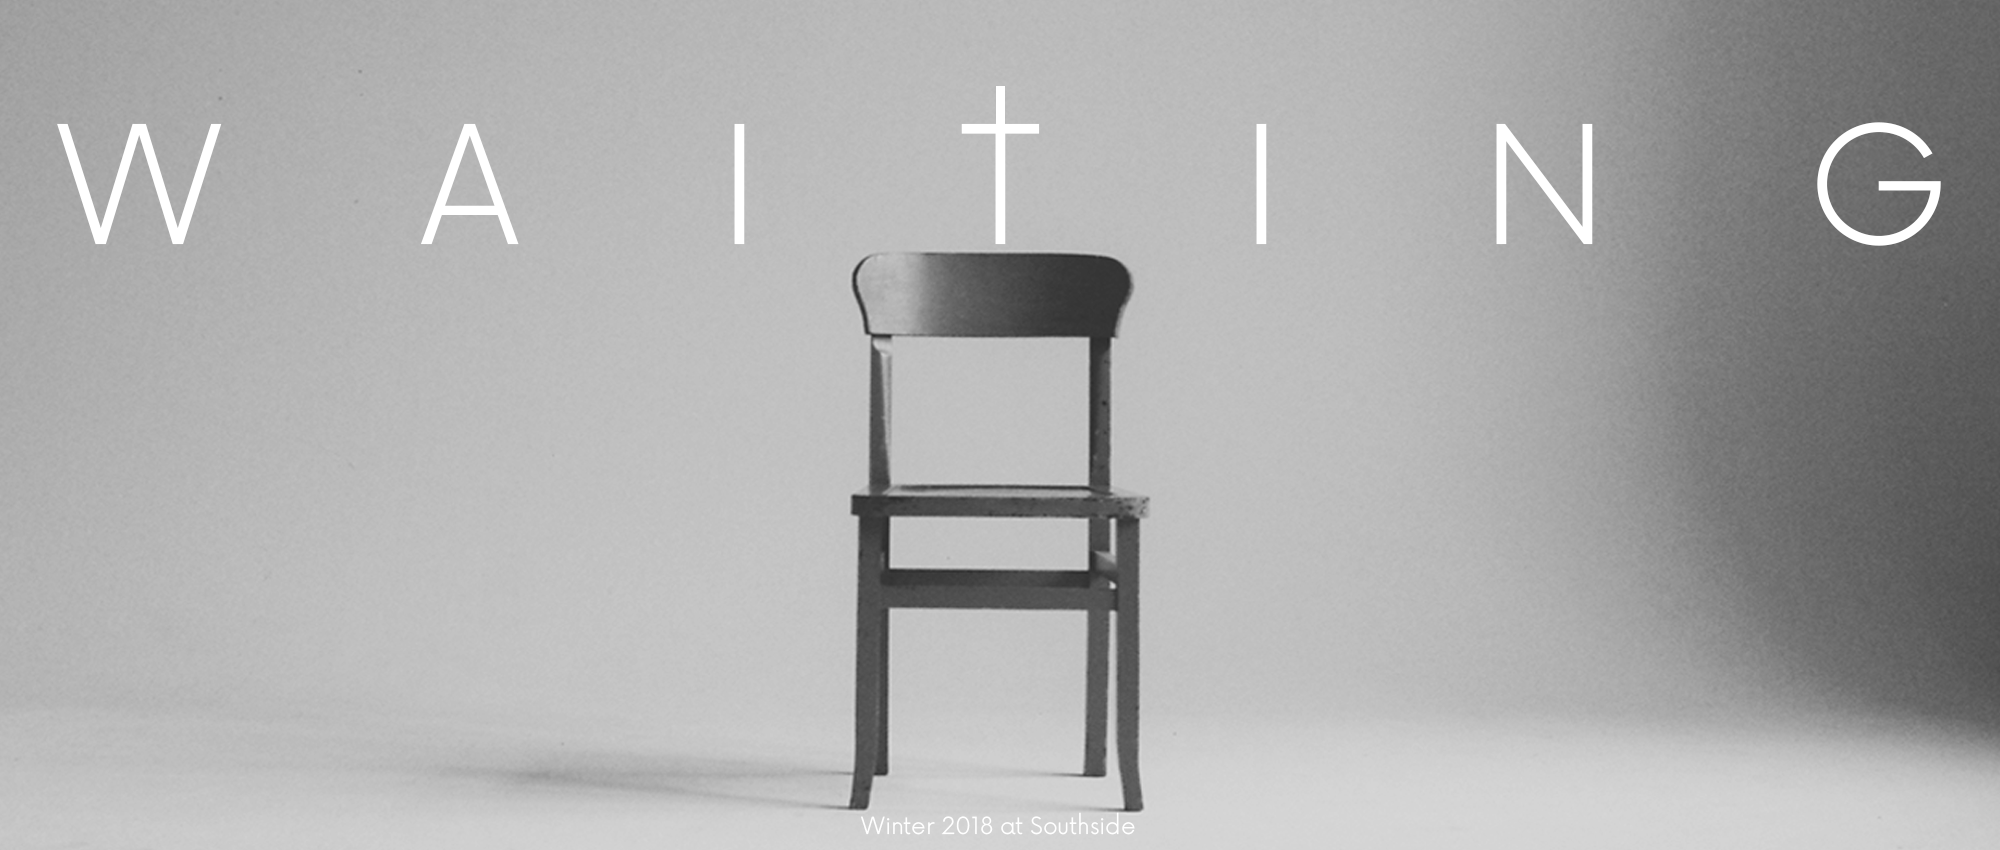 Waiting-single-chair-Banner